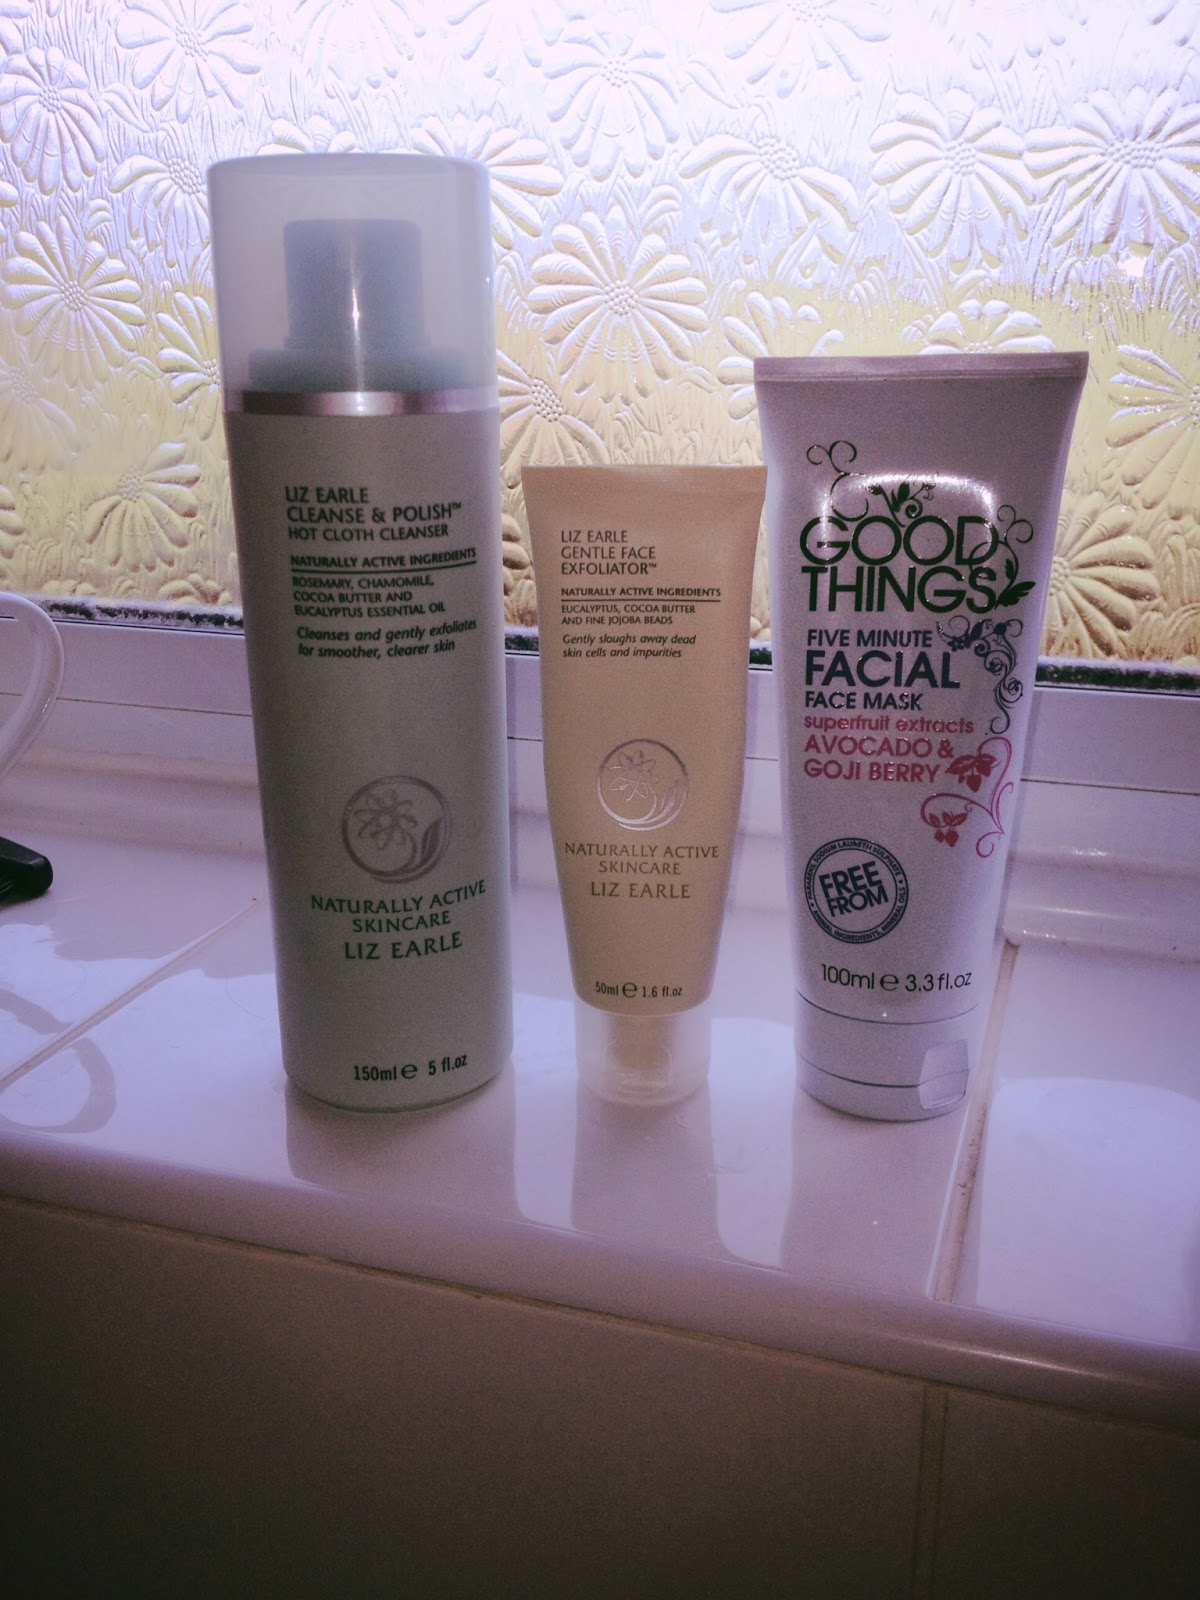 Liz Earle Cleanse and Polish, Liz Earle Gentle Face Exfoliator, Good Things Five Minute Facial 1